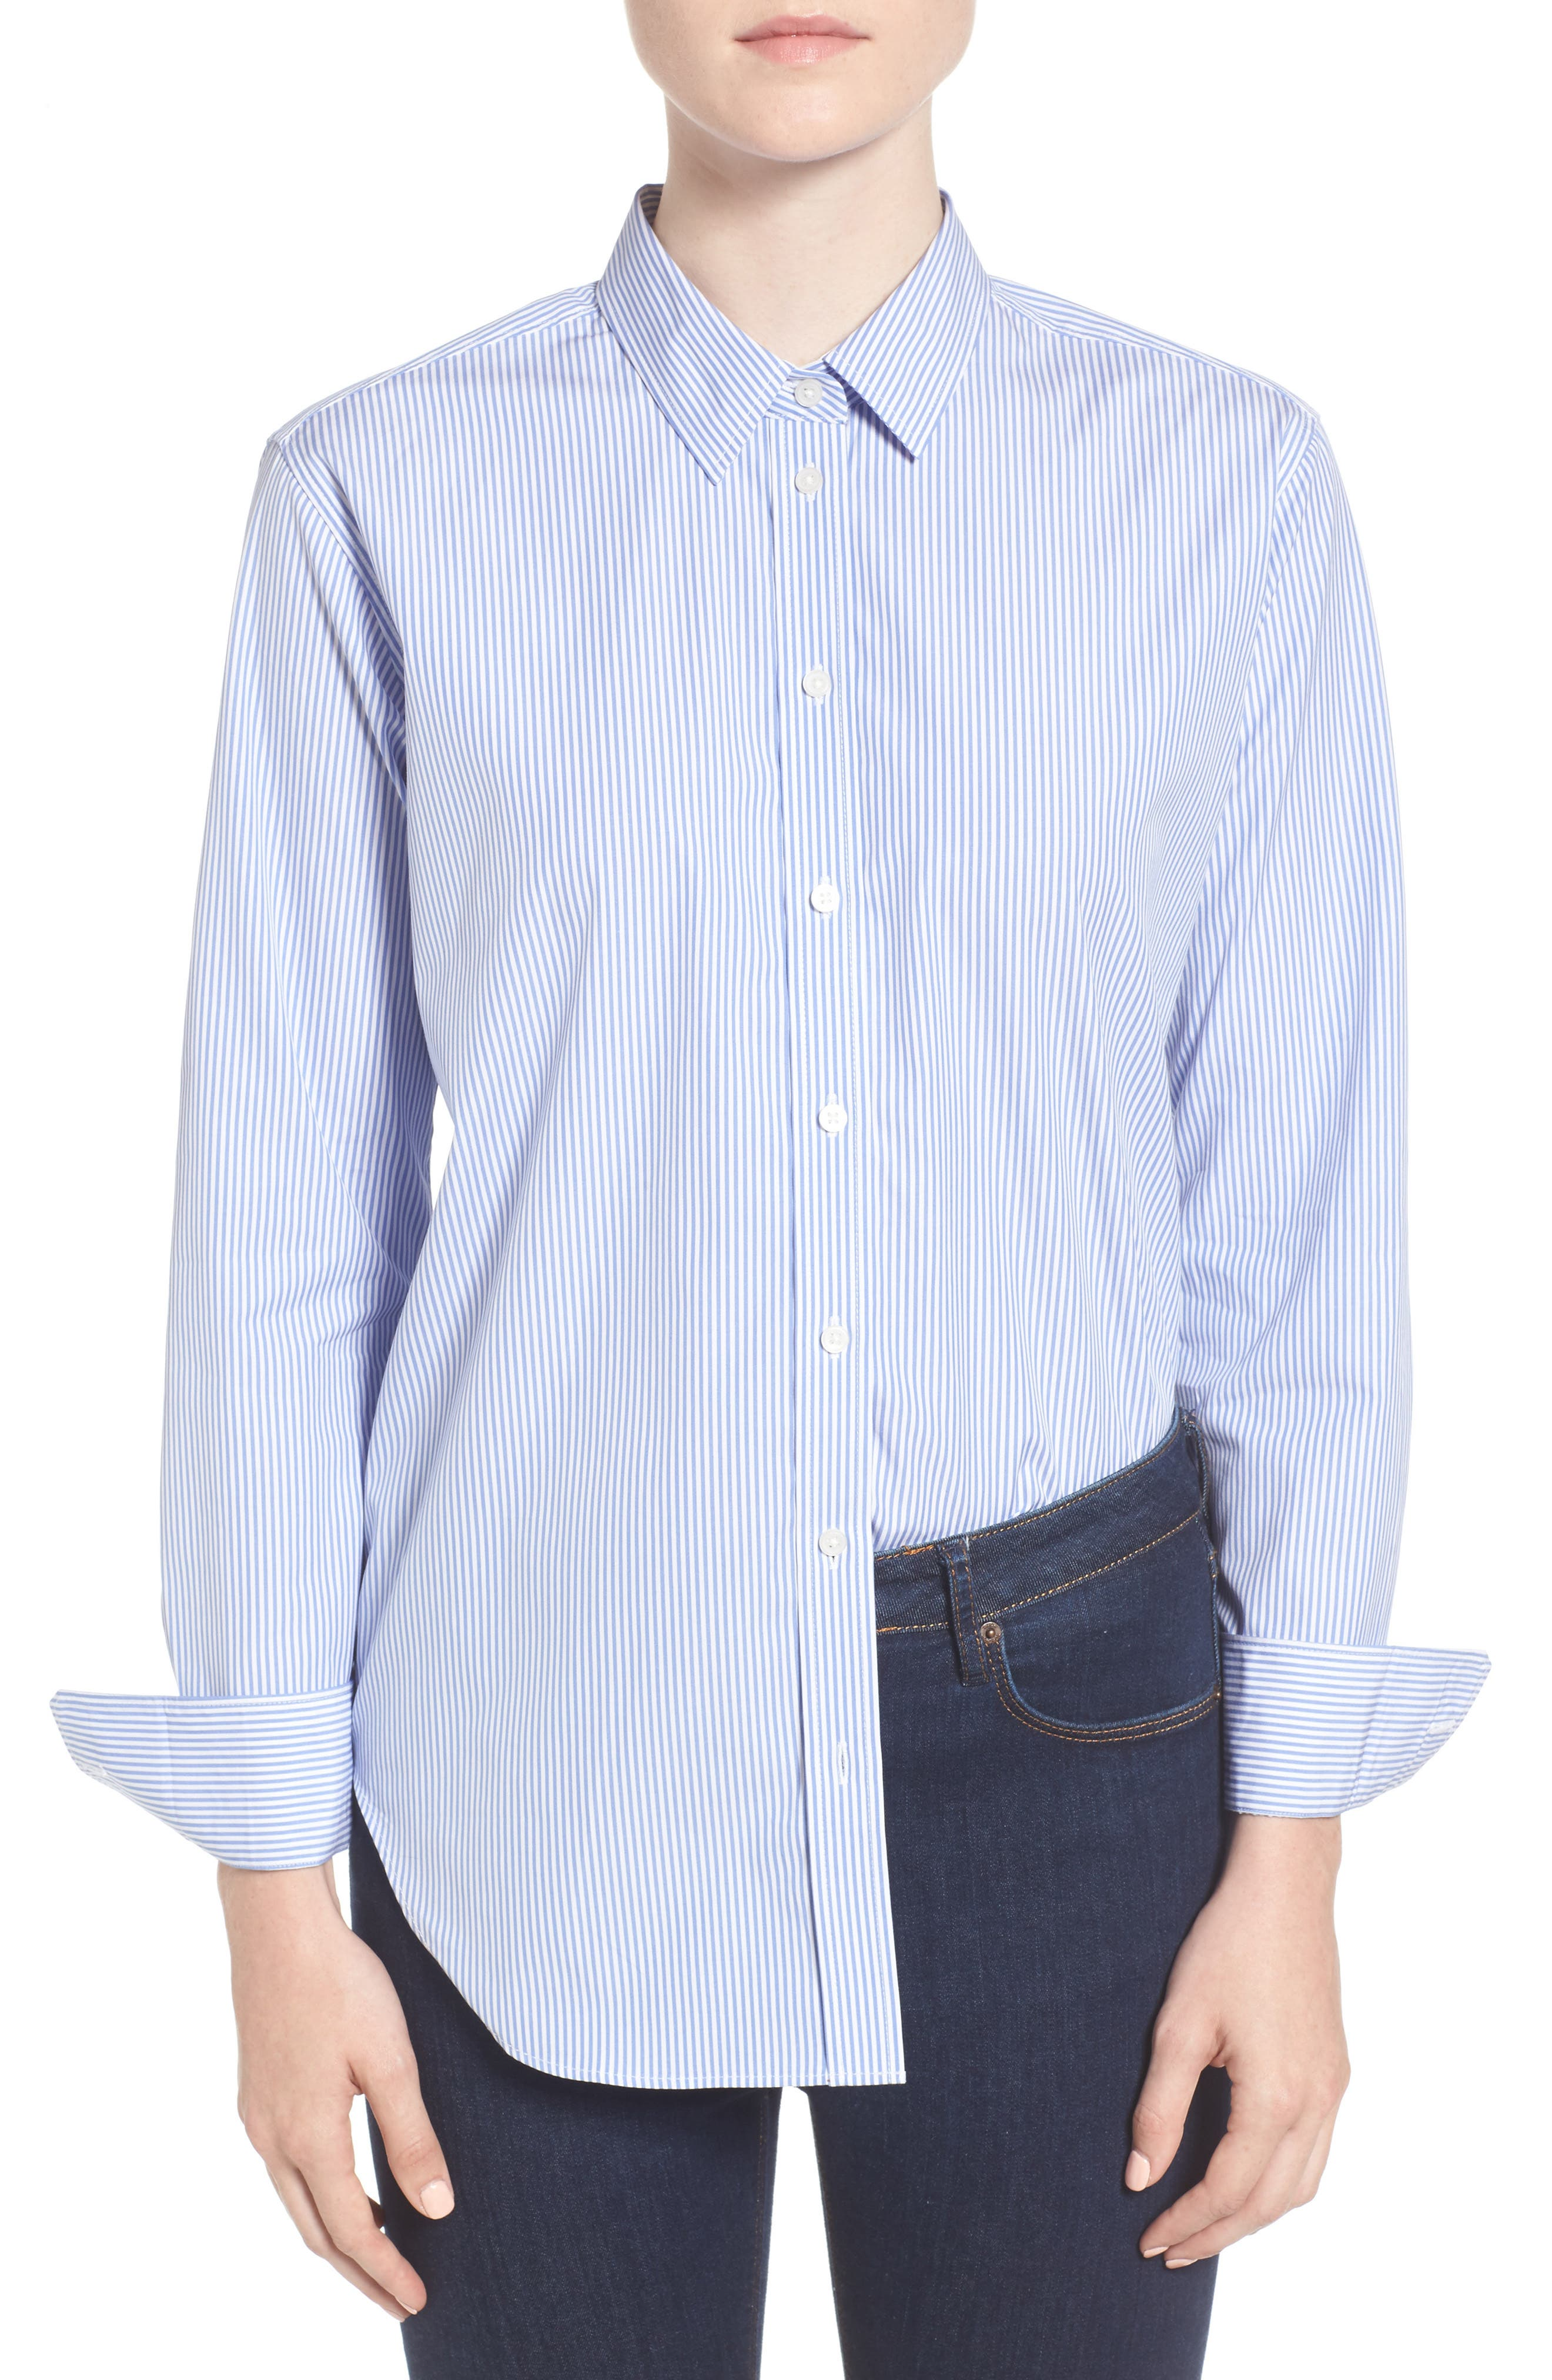 Main Image - Everlane The Relaxed Poplin Shirt